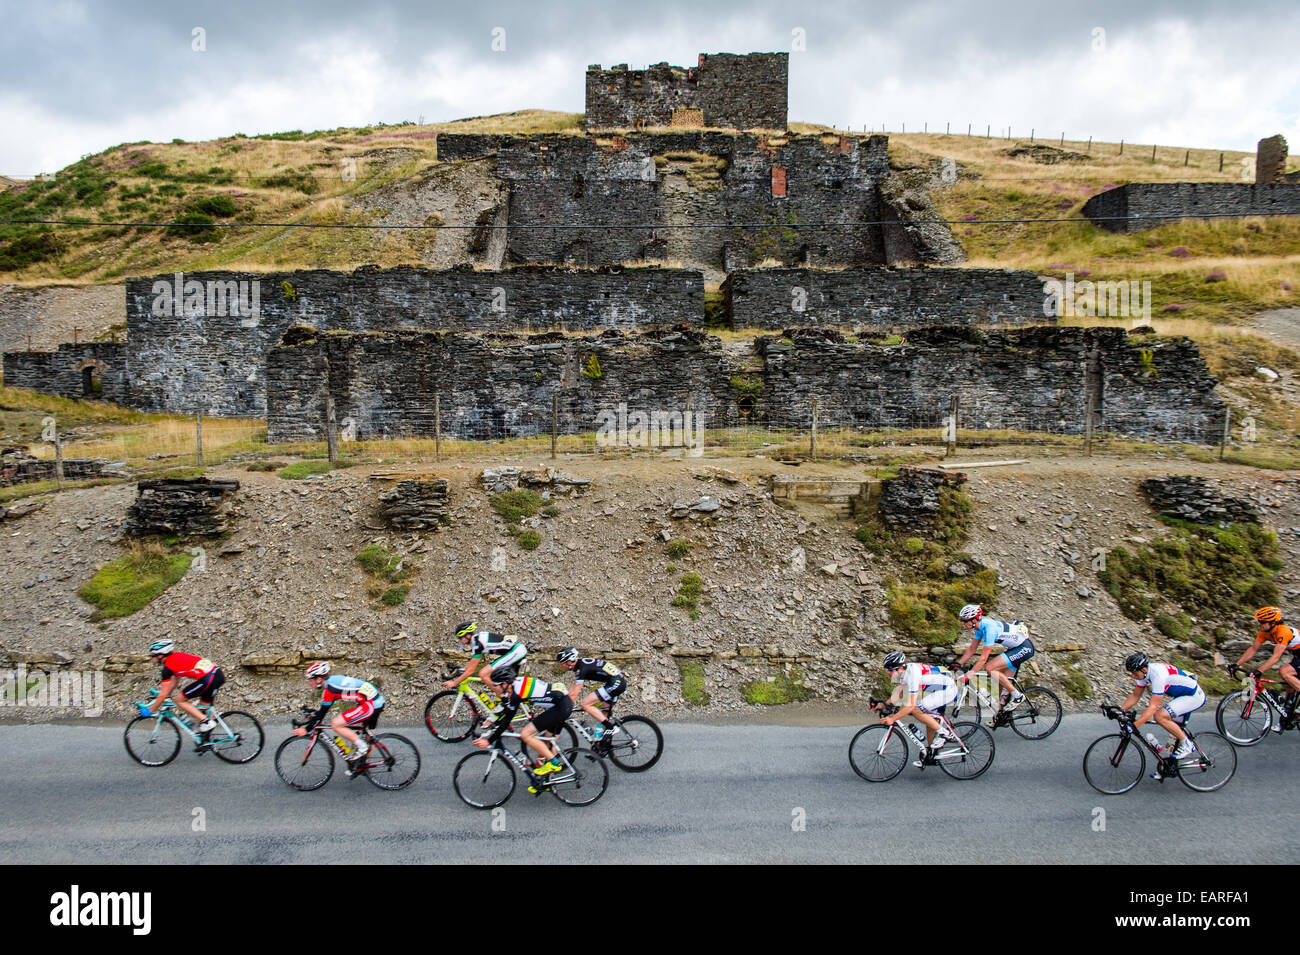 Professional cyclists passing the ruined lead mines in the 'Tour of the Mining Valleys' cycle race Ceredigion - Stock Image